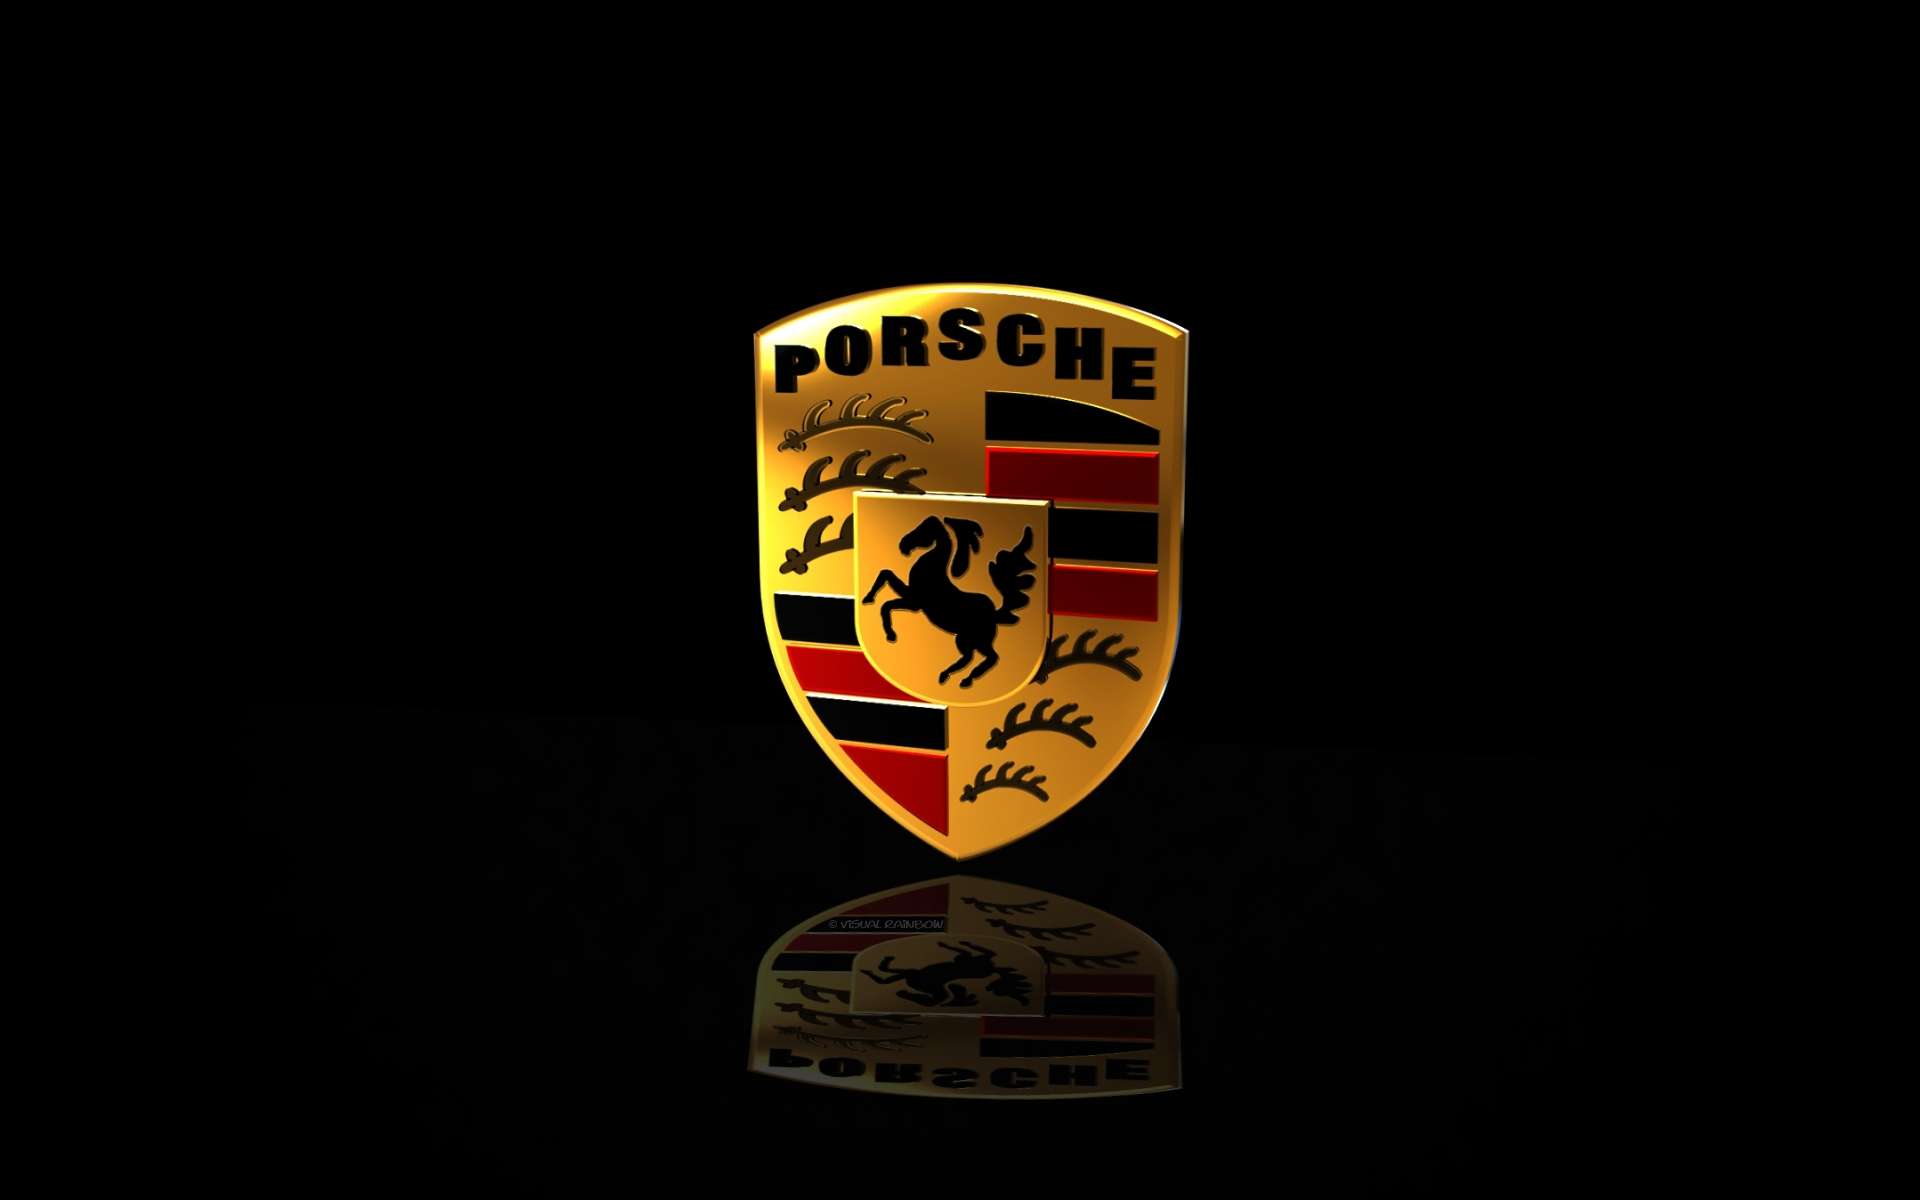 porsche logo widescreen wallpaper 1920x1200 - Porsche Logo Wallpaper Iphone